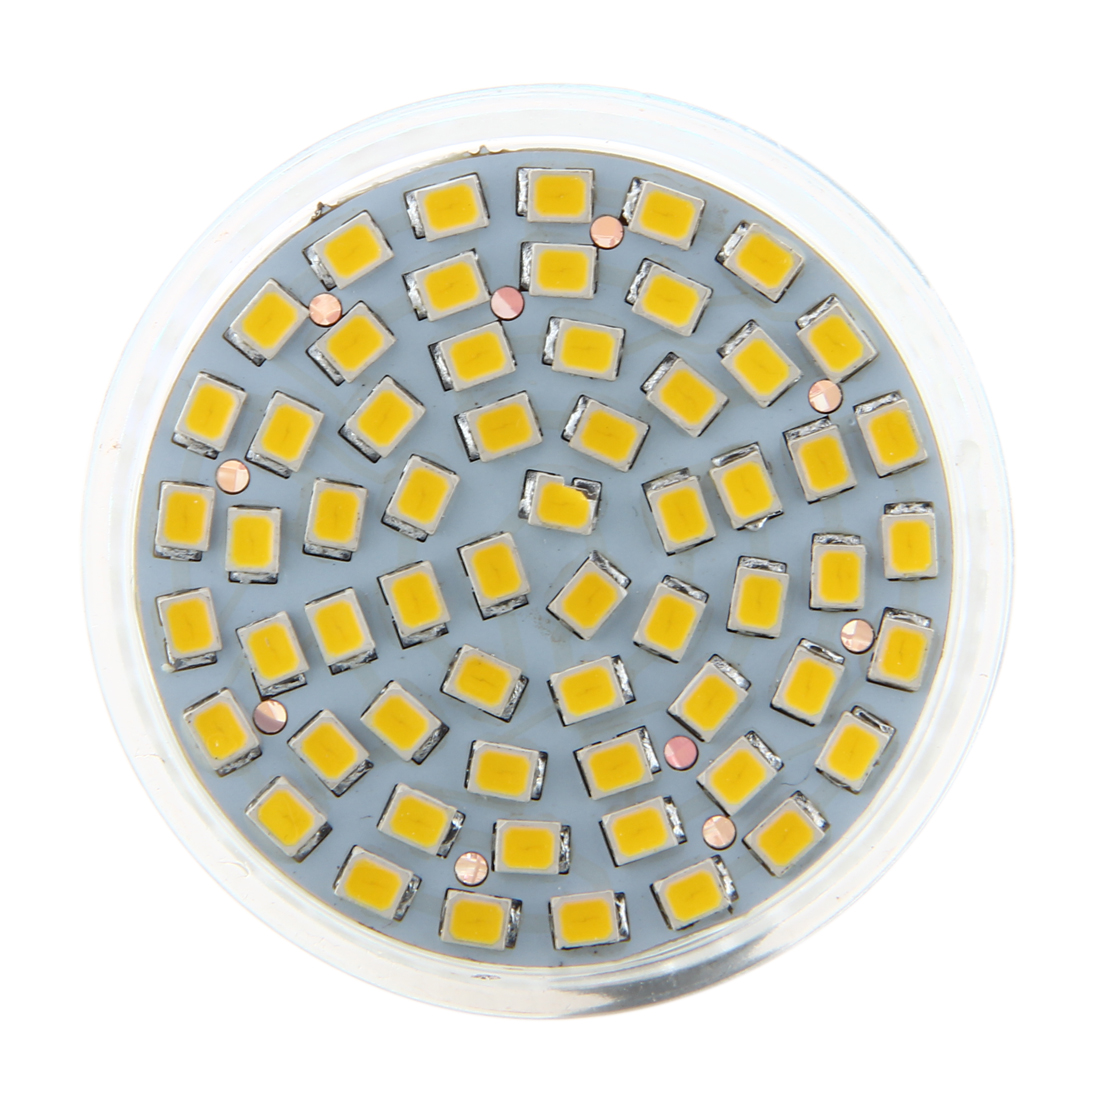 MR16 GU5, 3 60 <font><b>LED</b></font> 3528 SMD <font><b>3W</b></font> <font><b>SPOT</b></font> GLÜHBIRNE warm weiß <font><b>12V</b></font> Drop Shipping image